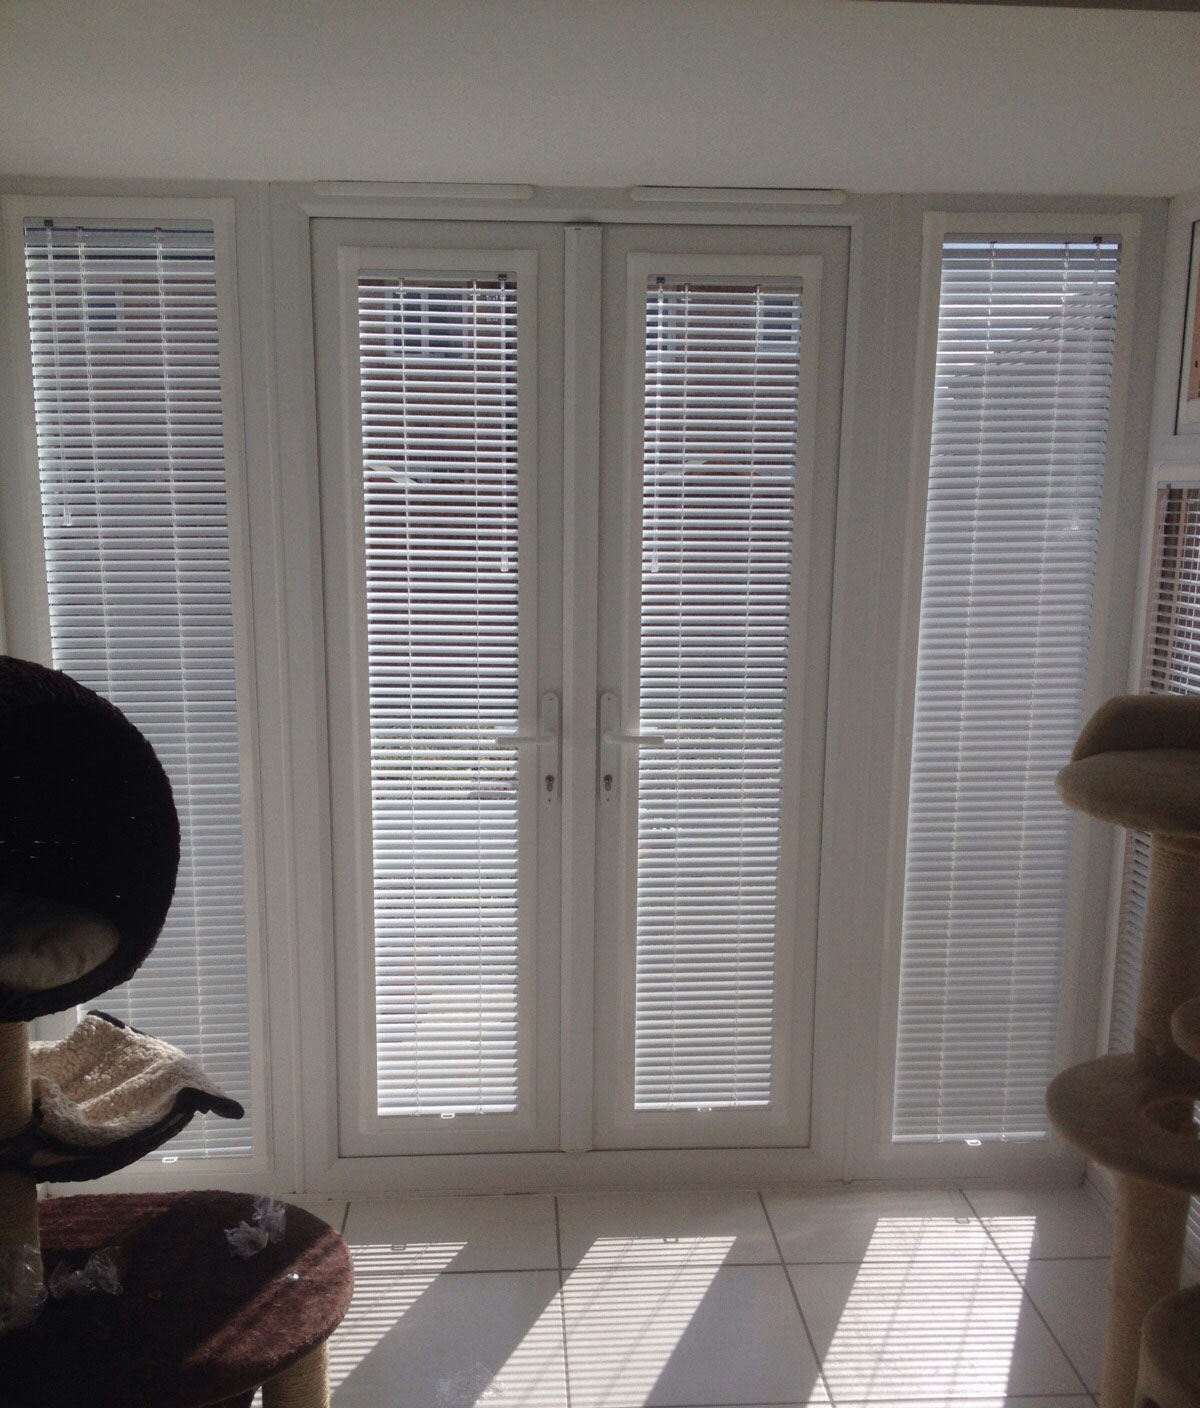 Perfect Fit Blinds R Us Rotherham